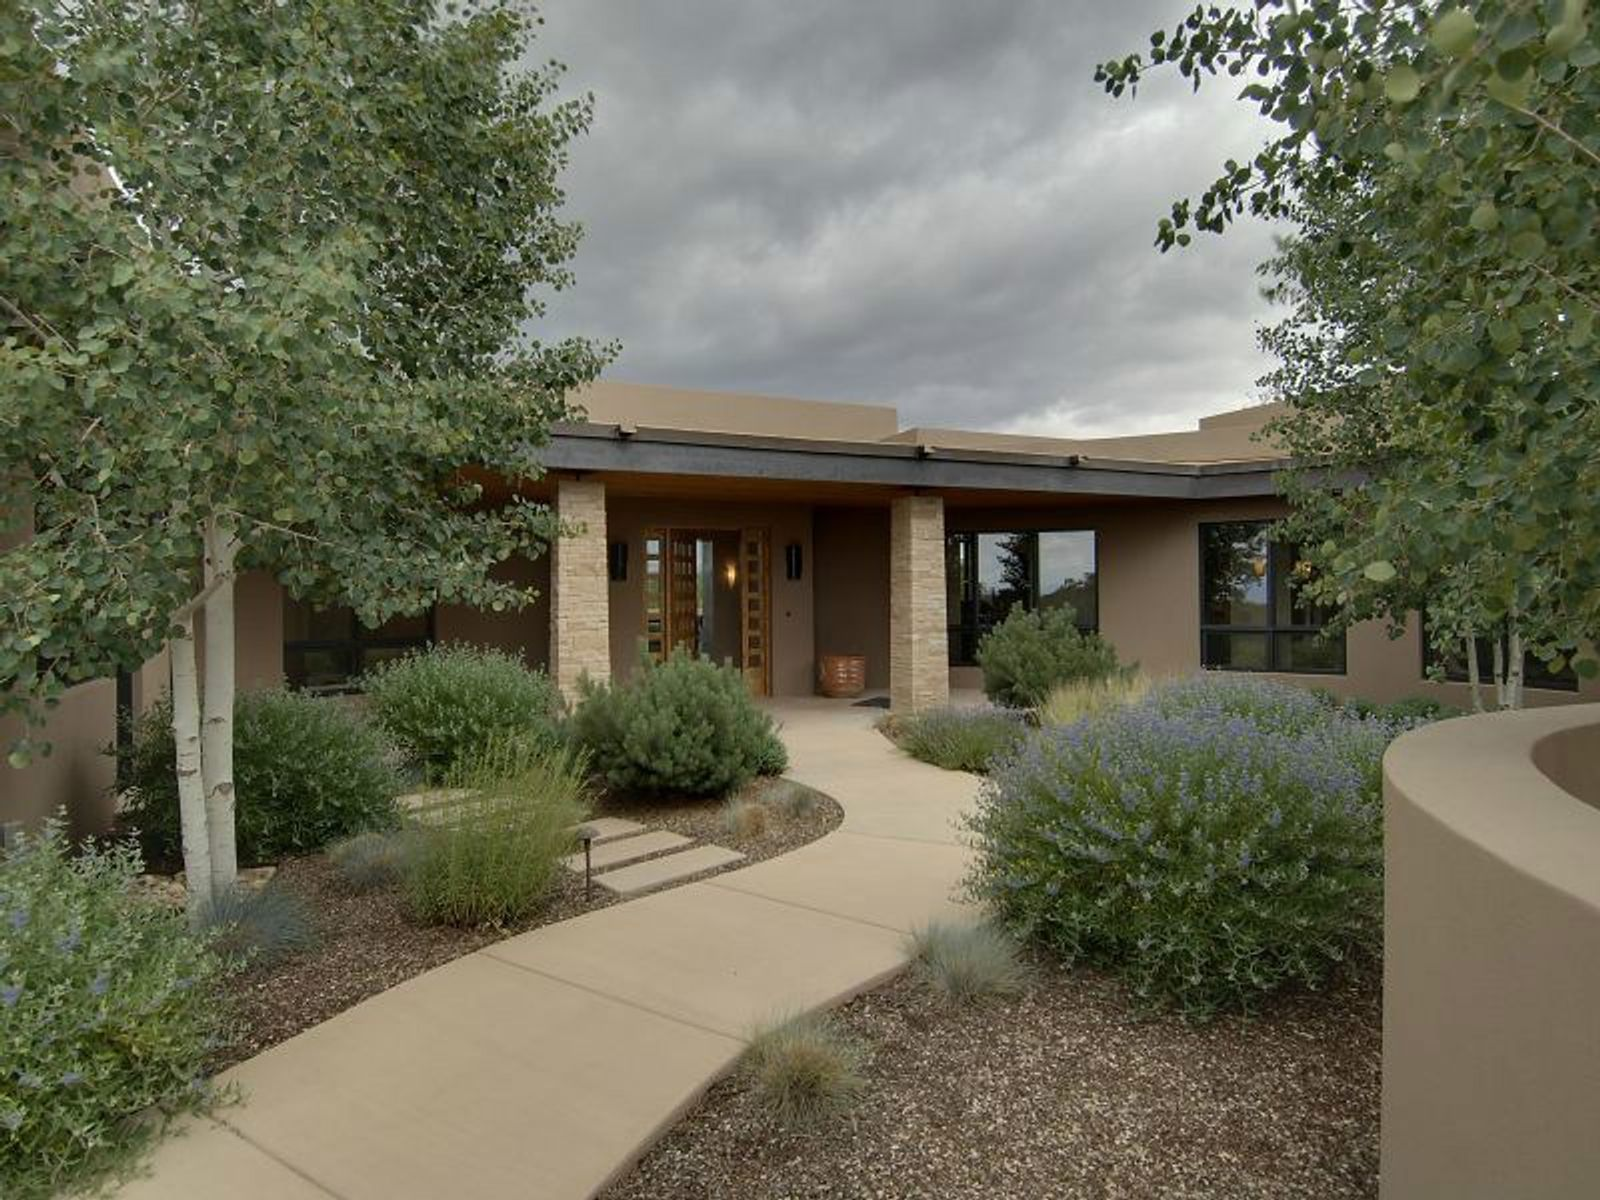 34 Primrose Circle, Santa Fe NM Single Family Home - Santa Fe Real Estate